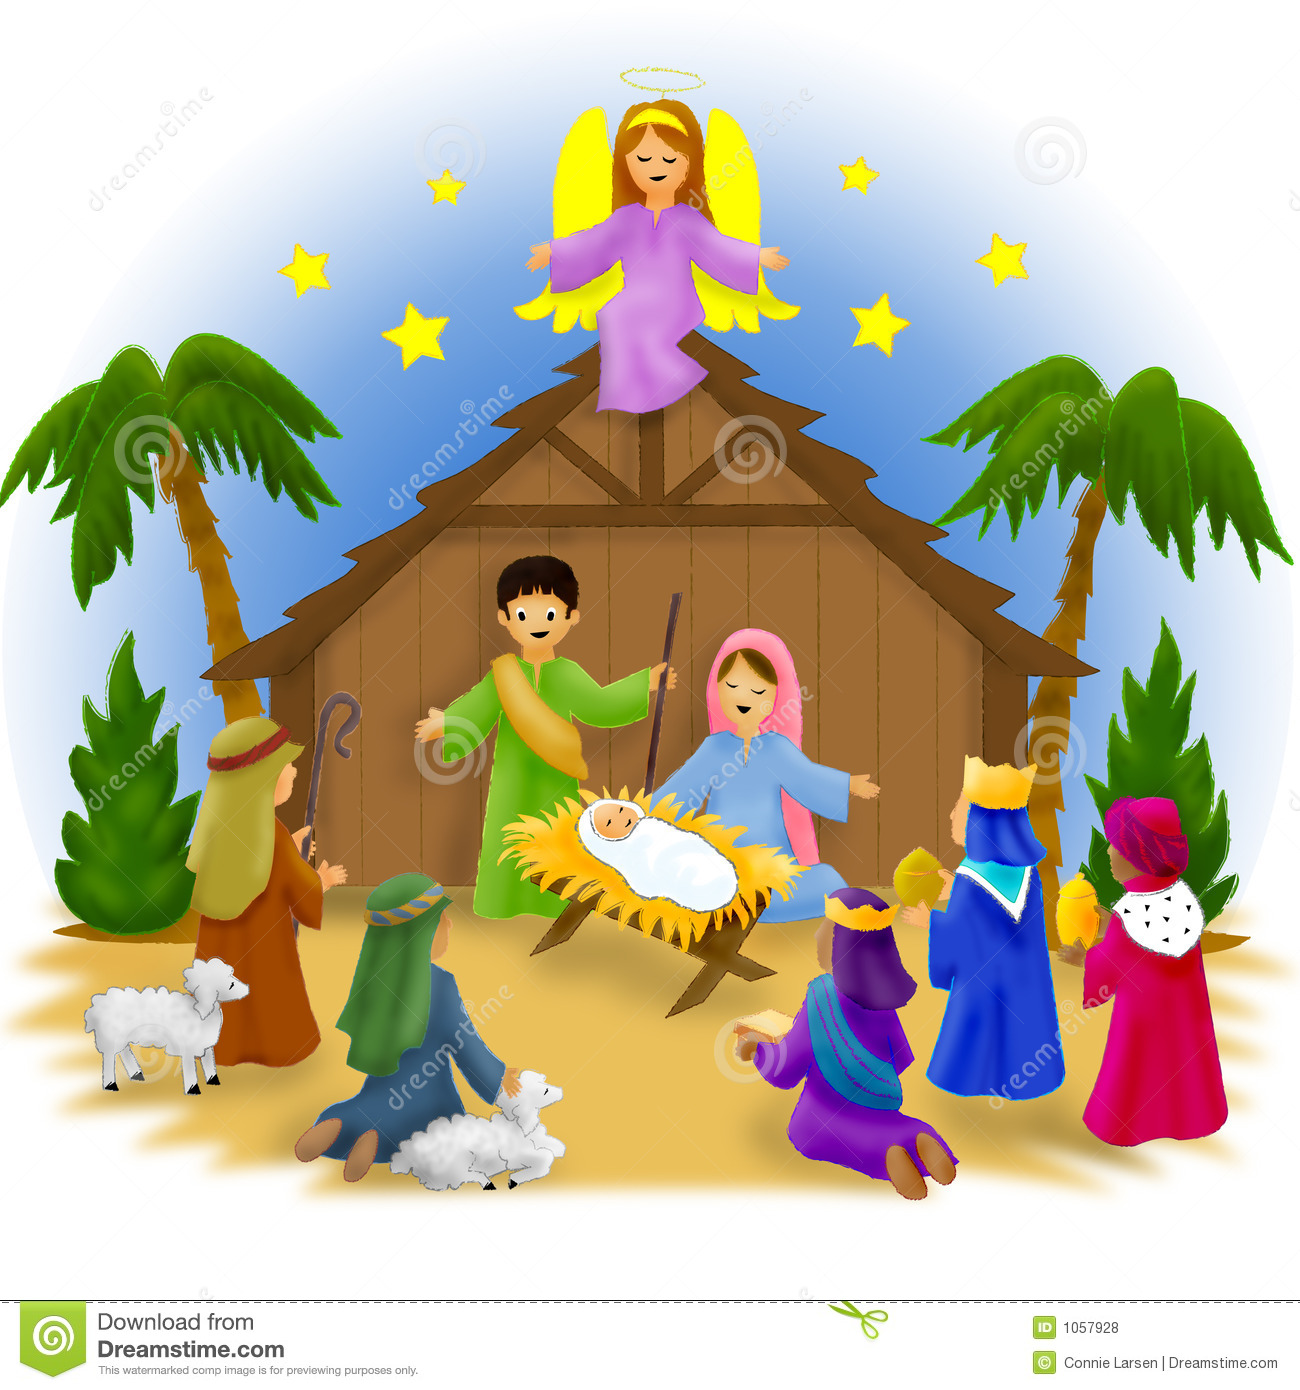 Illustration of children portraying the Nativity in a pageant scene.